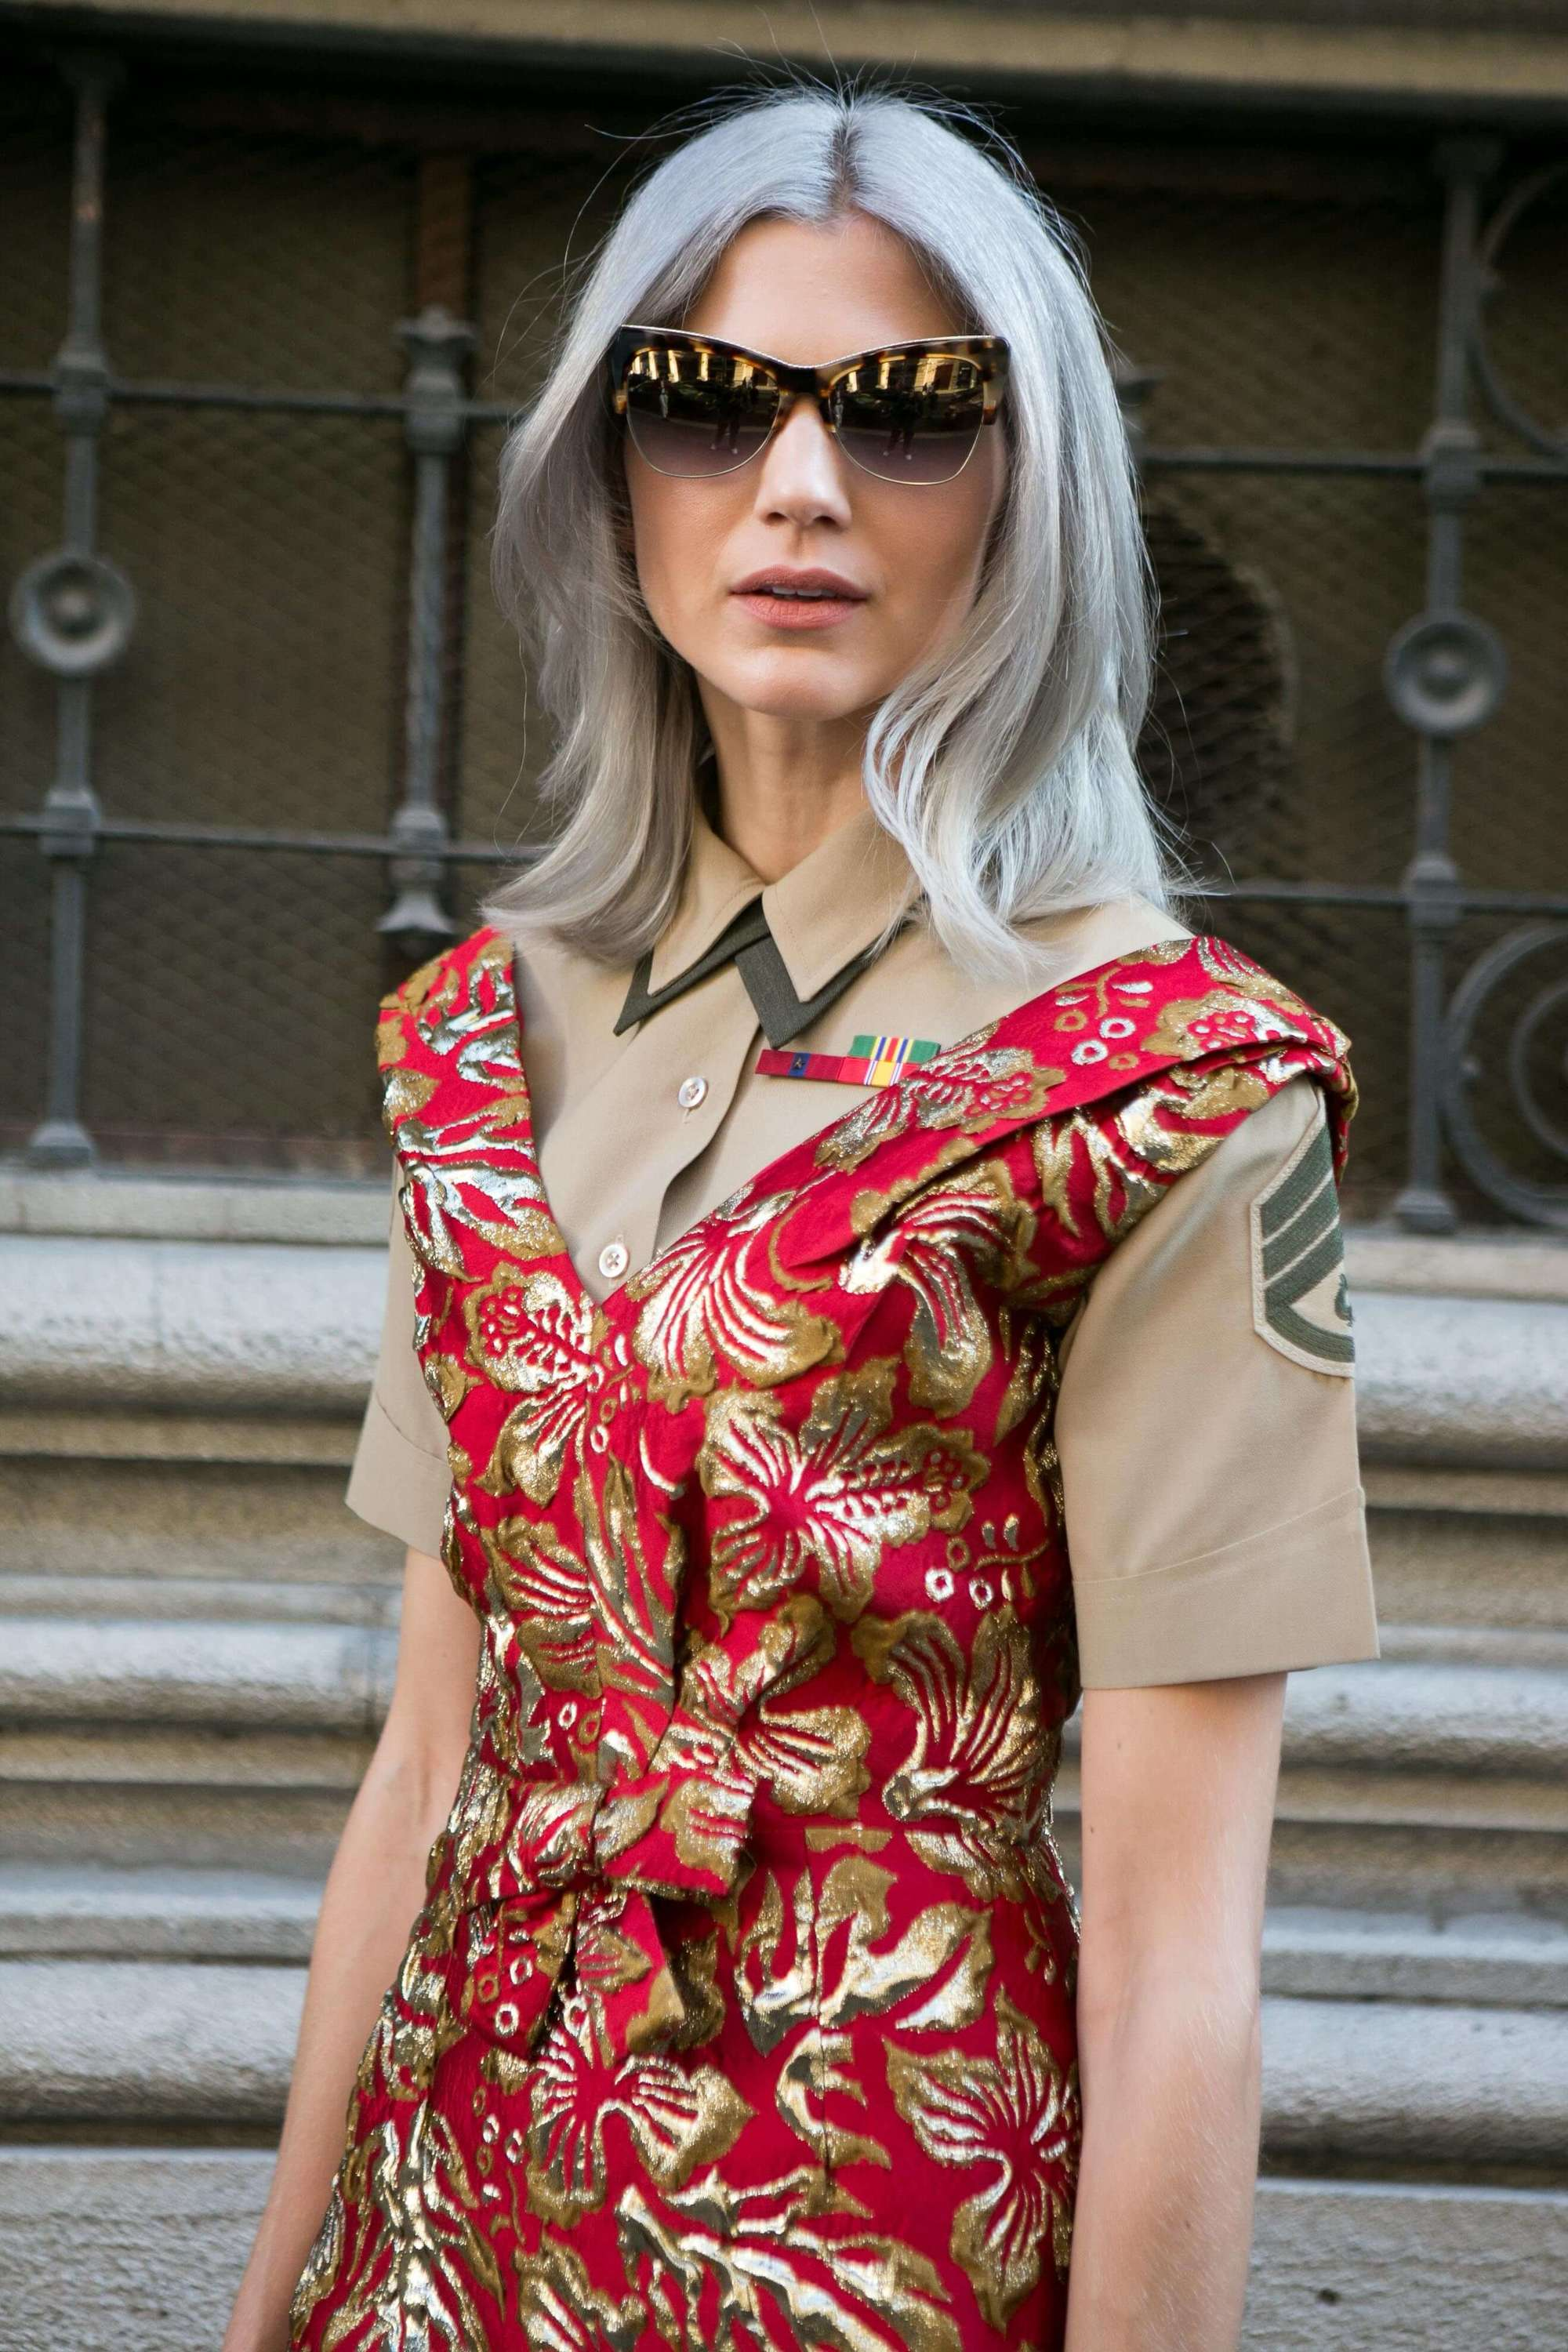 street style blogger at milan fashion week wearing a red floral dress with grey medium length hair